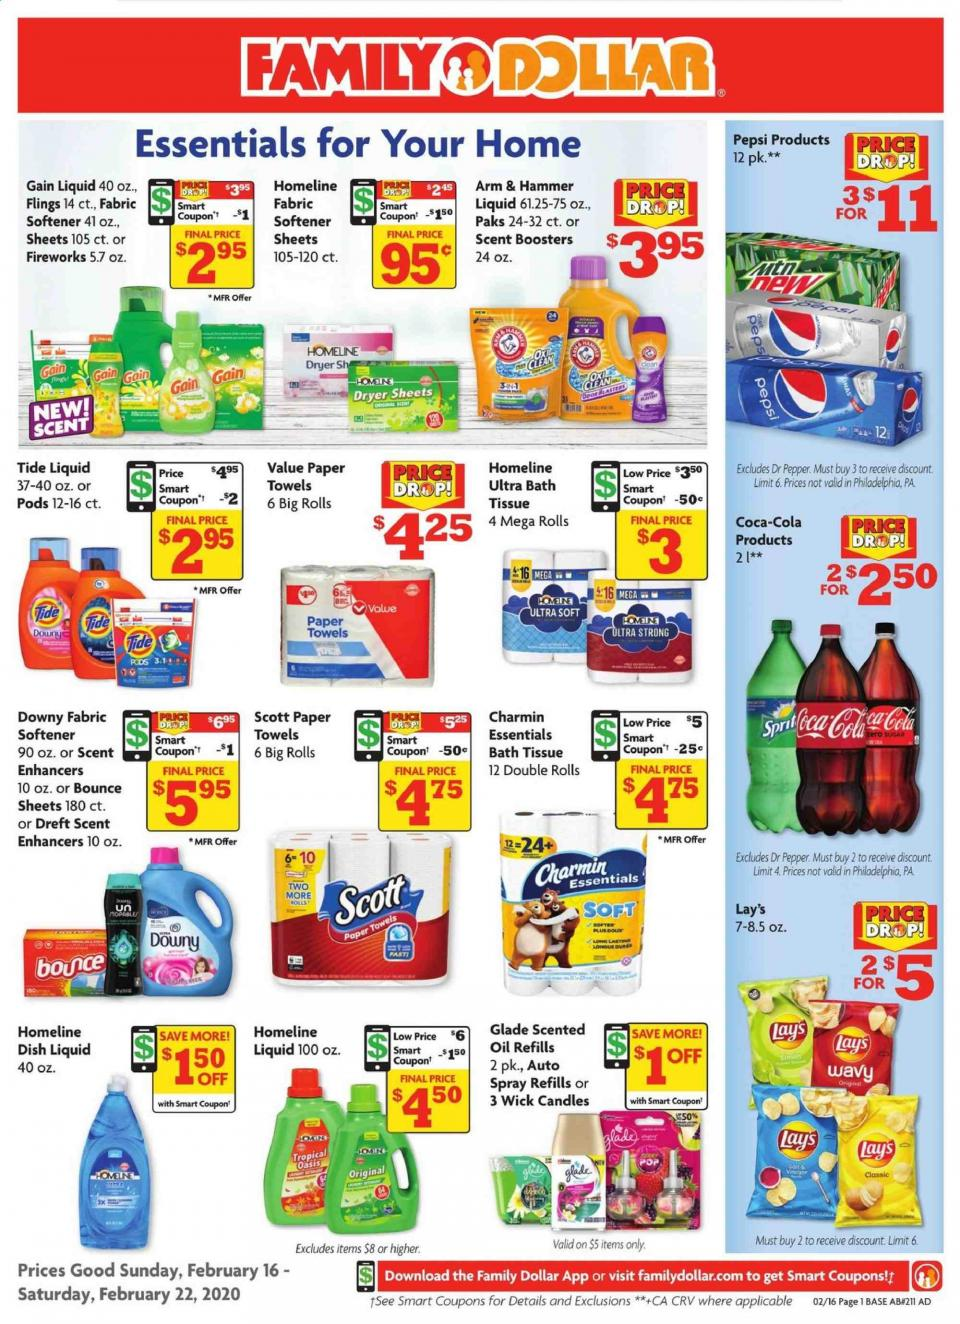 Family Dollar February Household Sale Ad valid from Feb 16 – 22, 2020.